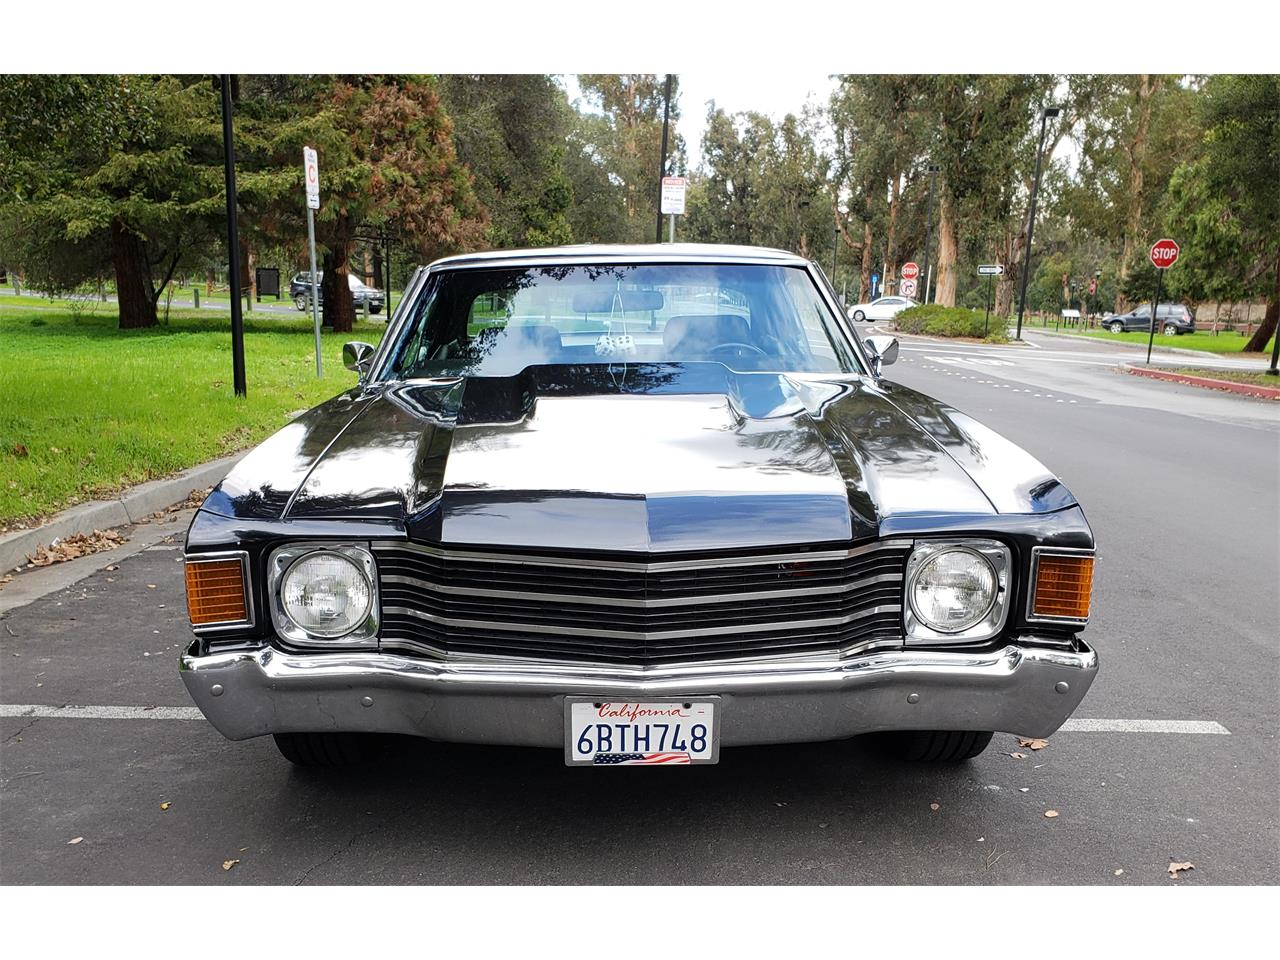 Large Picture of Classic 1972 Chevrolet Chevelle Malibu - $25,000.00 Offered by a Private Seller - PP62